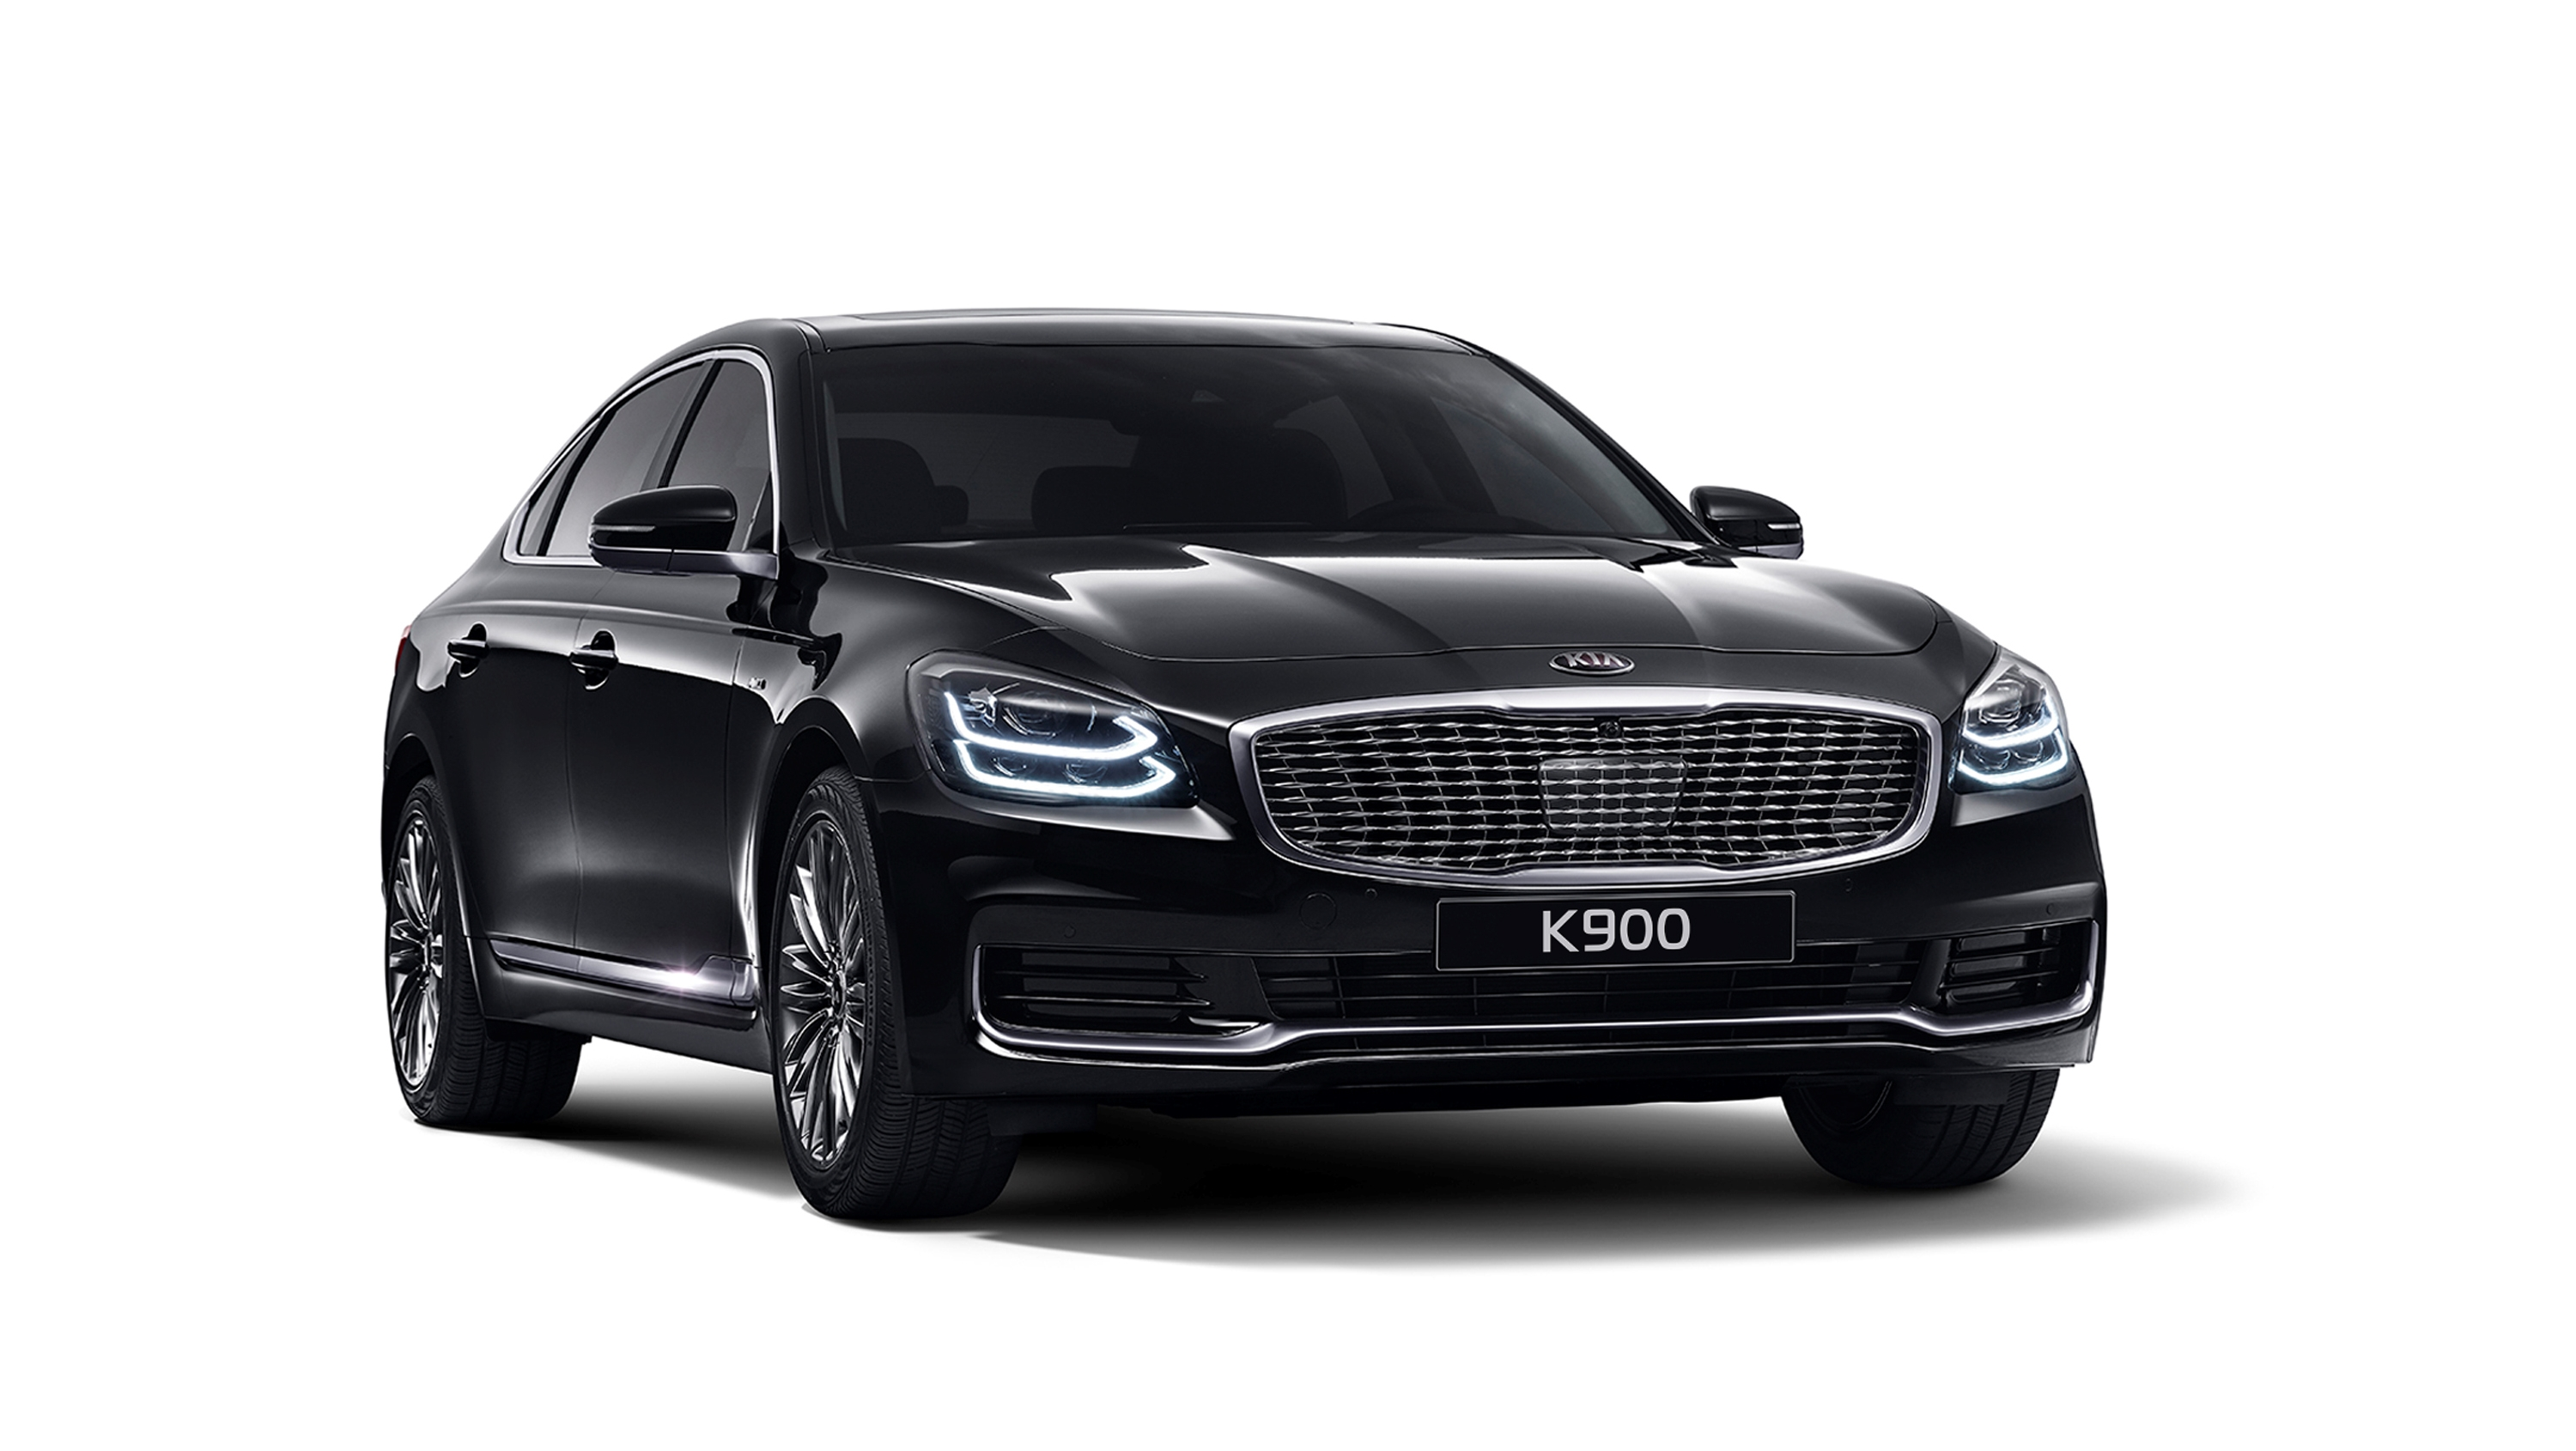 2019 Kia K900 Review - Top Speed